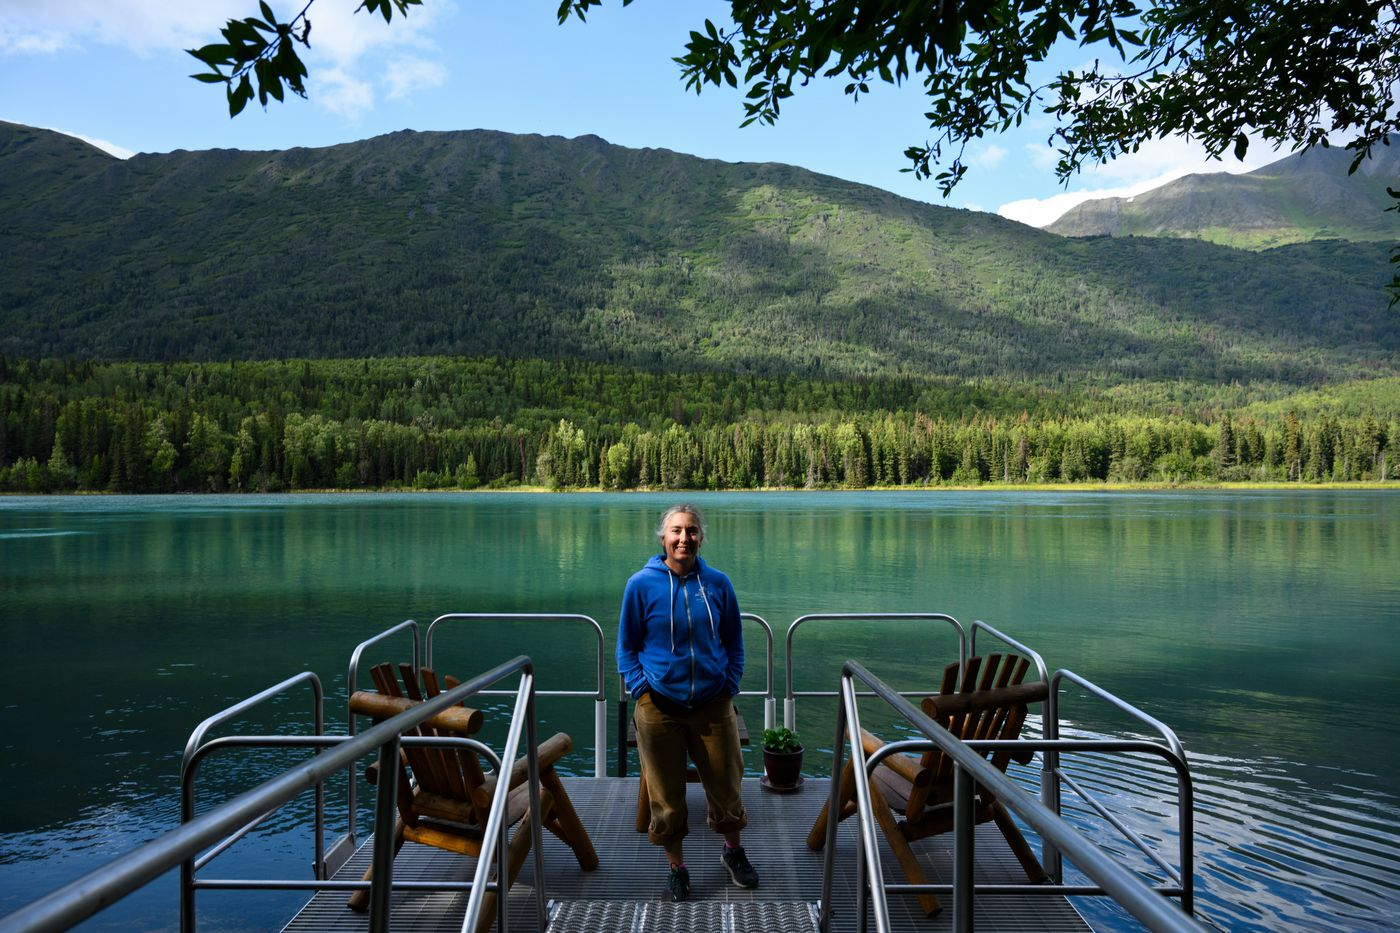 Dusty Byrd-Coulliette, who co-owns Alaska Troutfitter retail store and fishing guide business, said she's had to change her expectations this summer. 'We're just thankful for the business we do get, ' she said. (Marc Lester / ADN)